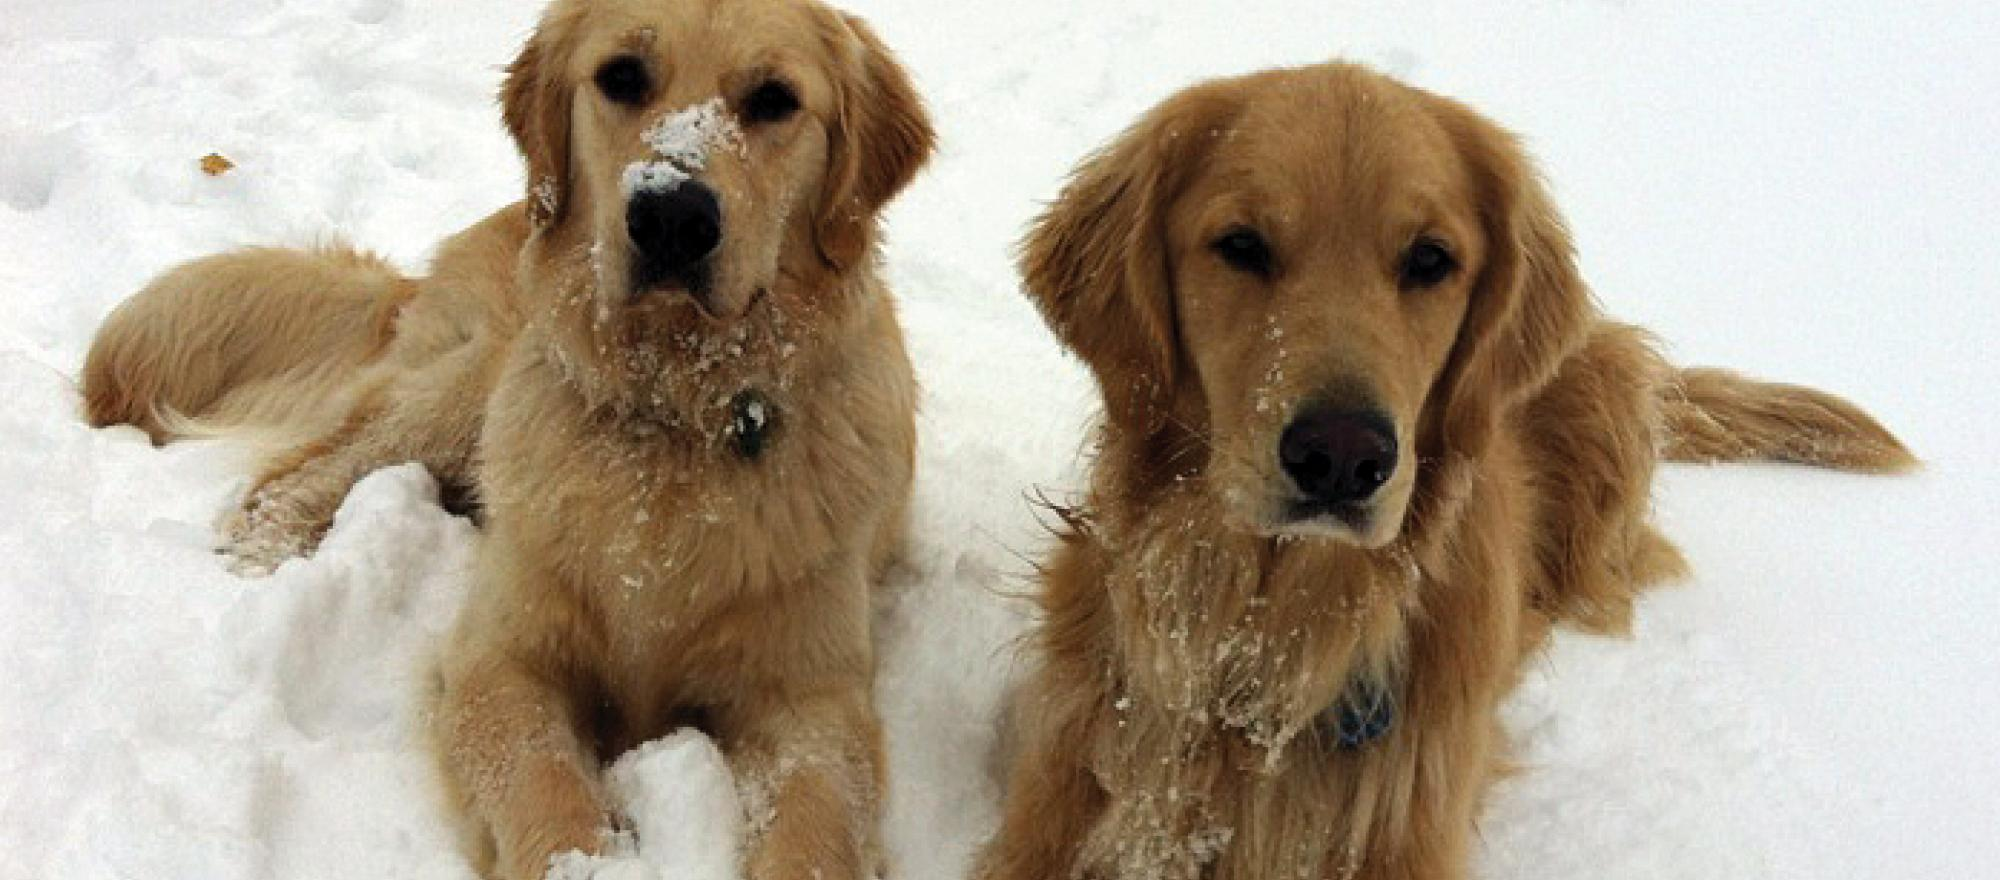 Miles and Louie Mesinger of Mesinger Jet Sales are both participating in the MAF Golden Retriever Lifetime Study.